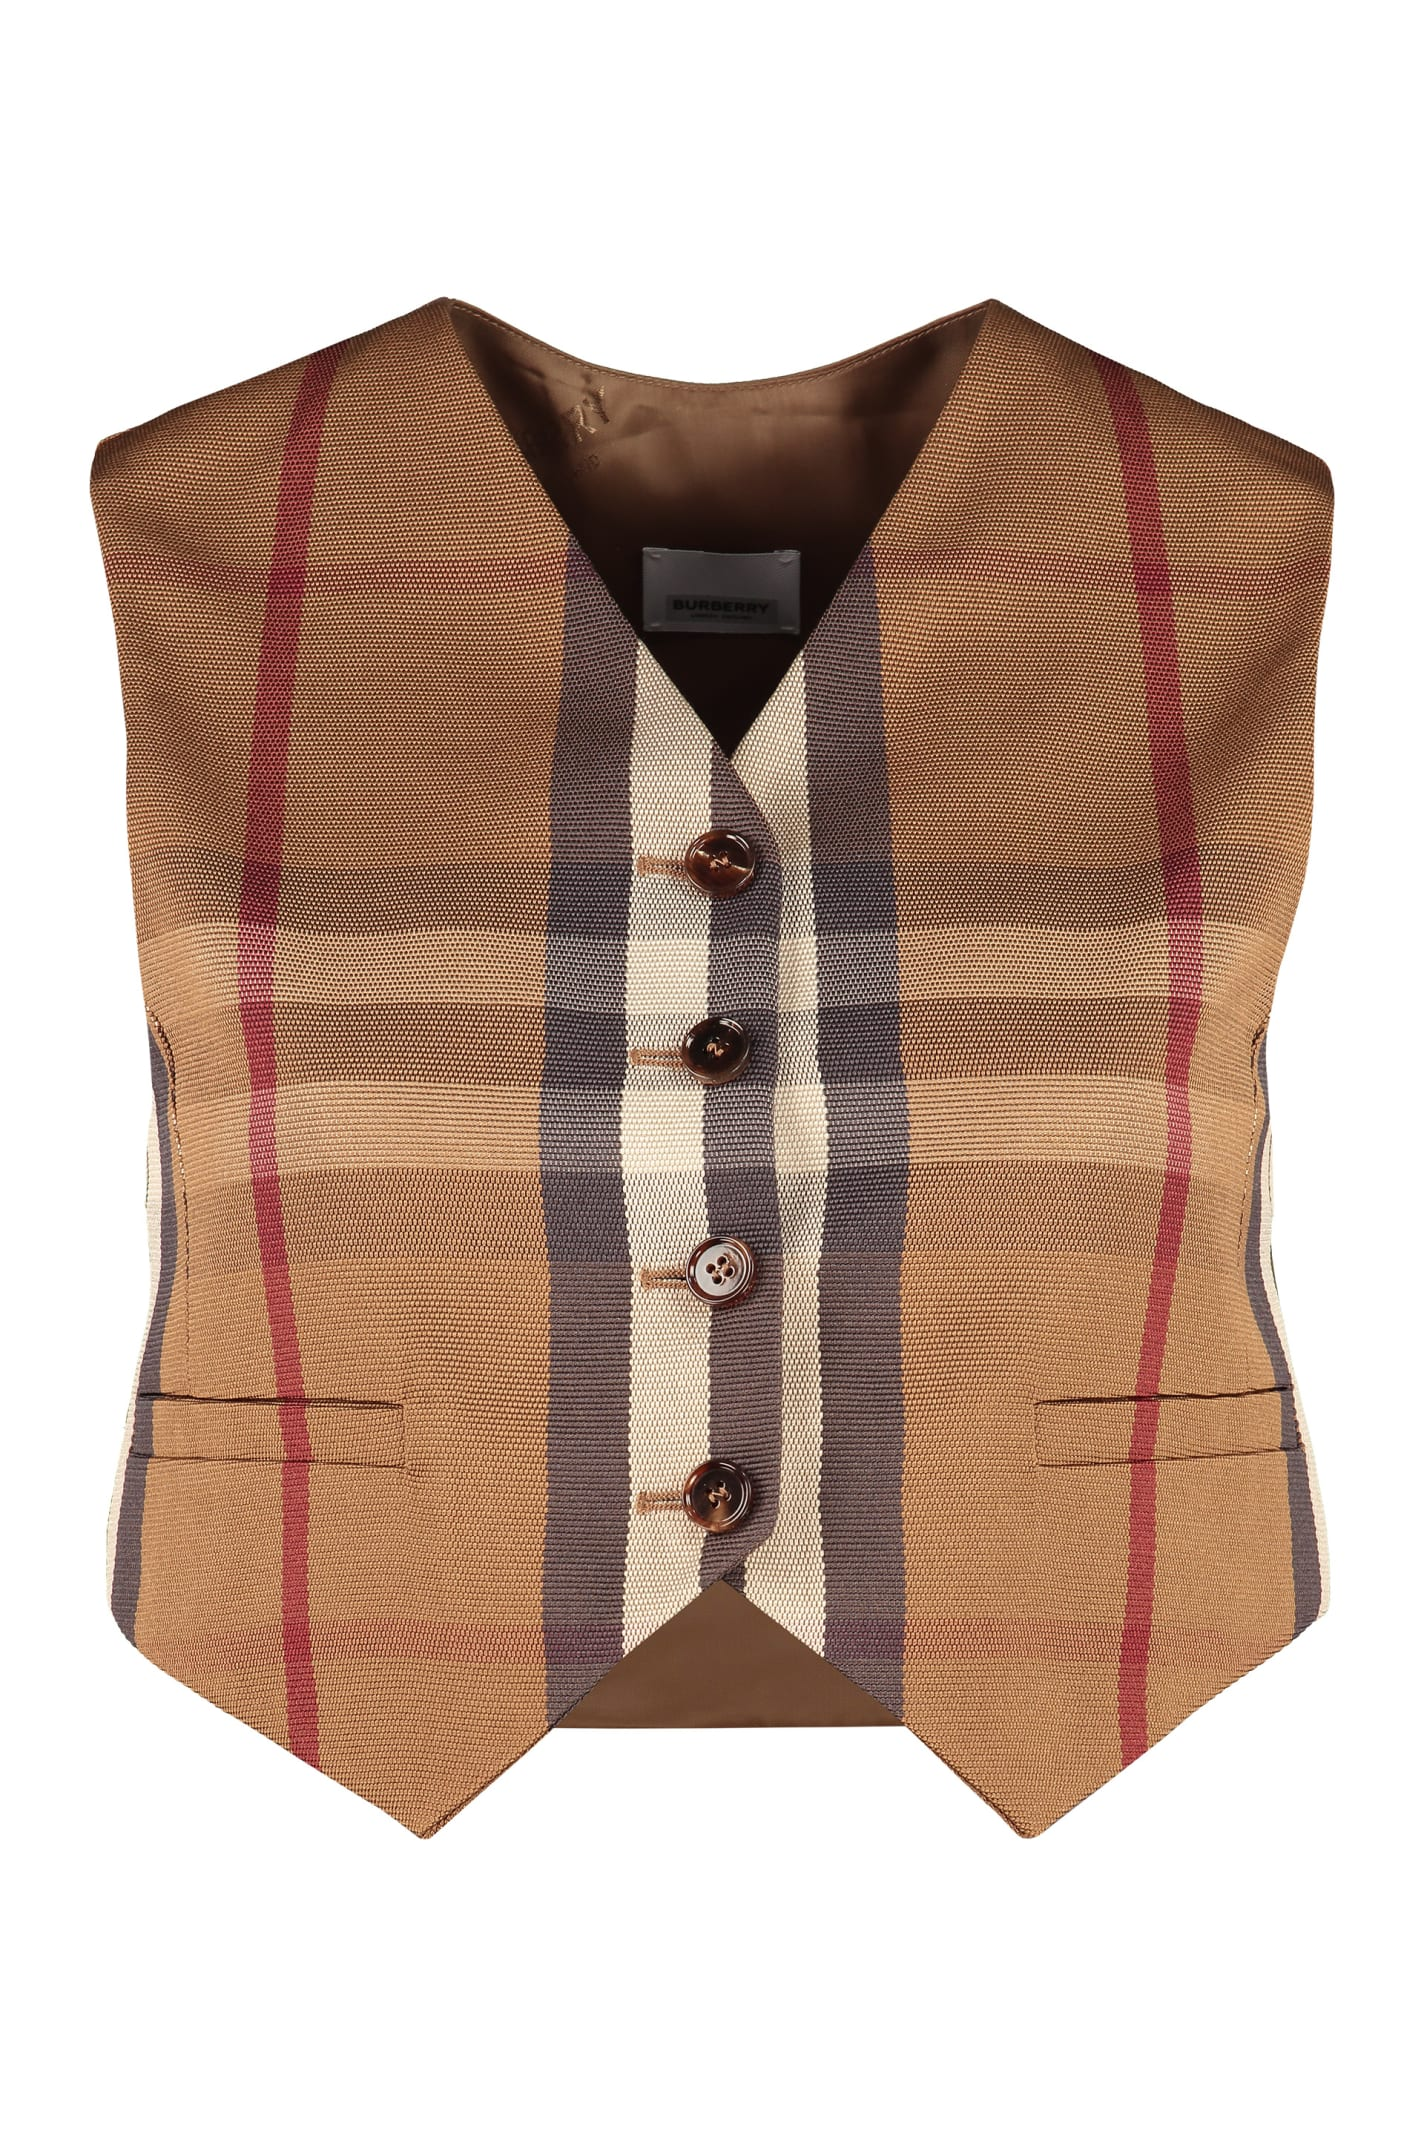 Burberry Checked Mixed Cotton Waist Coat In Beige